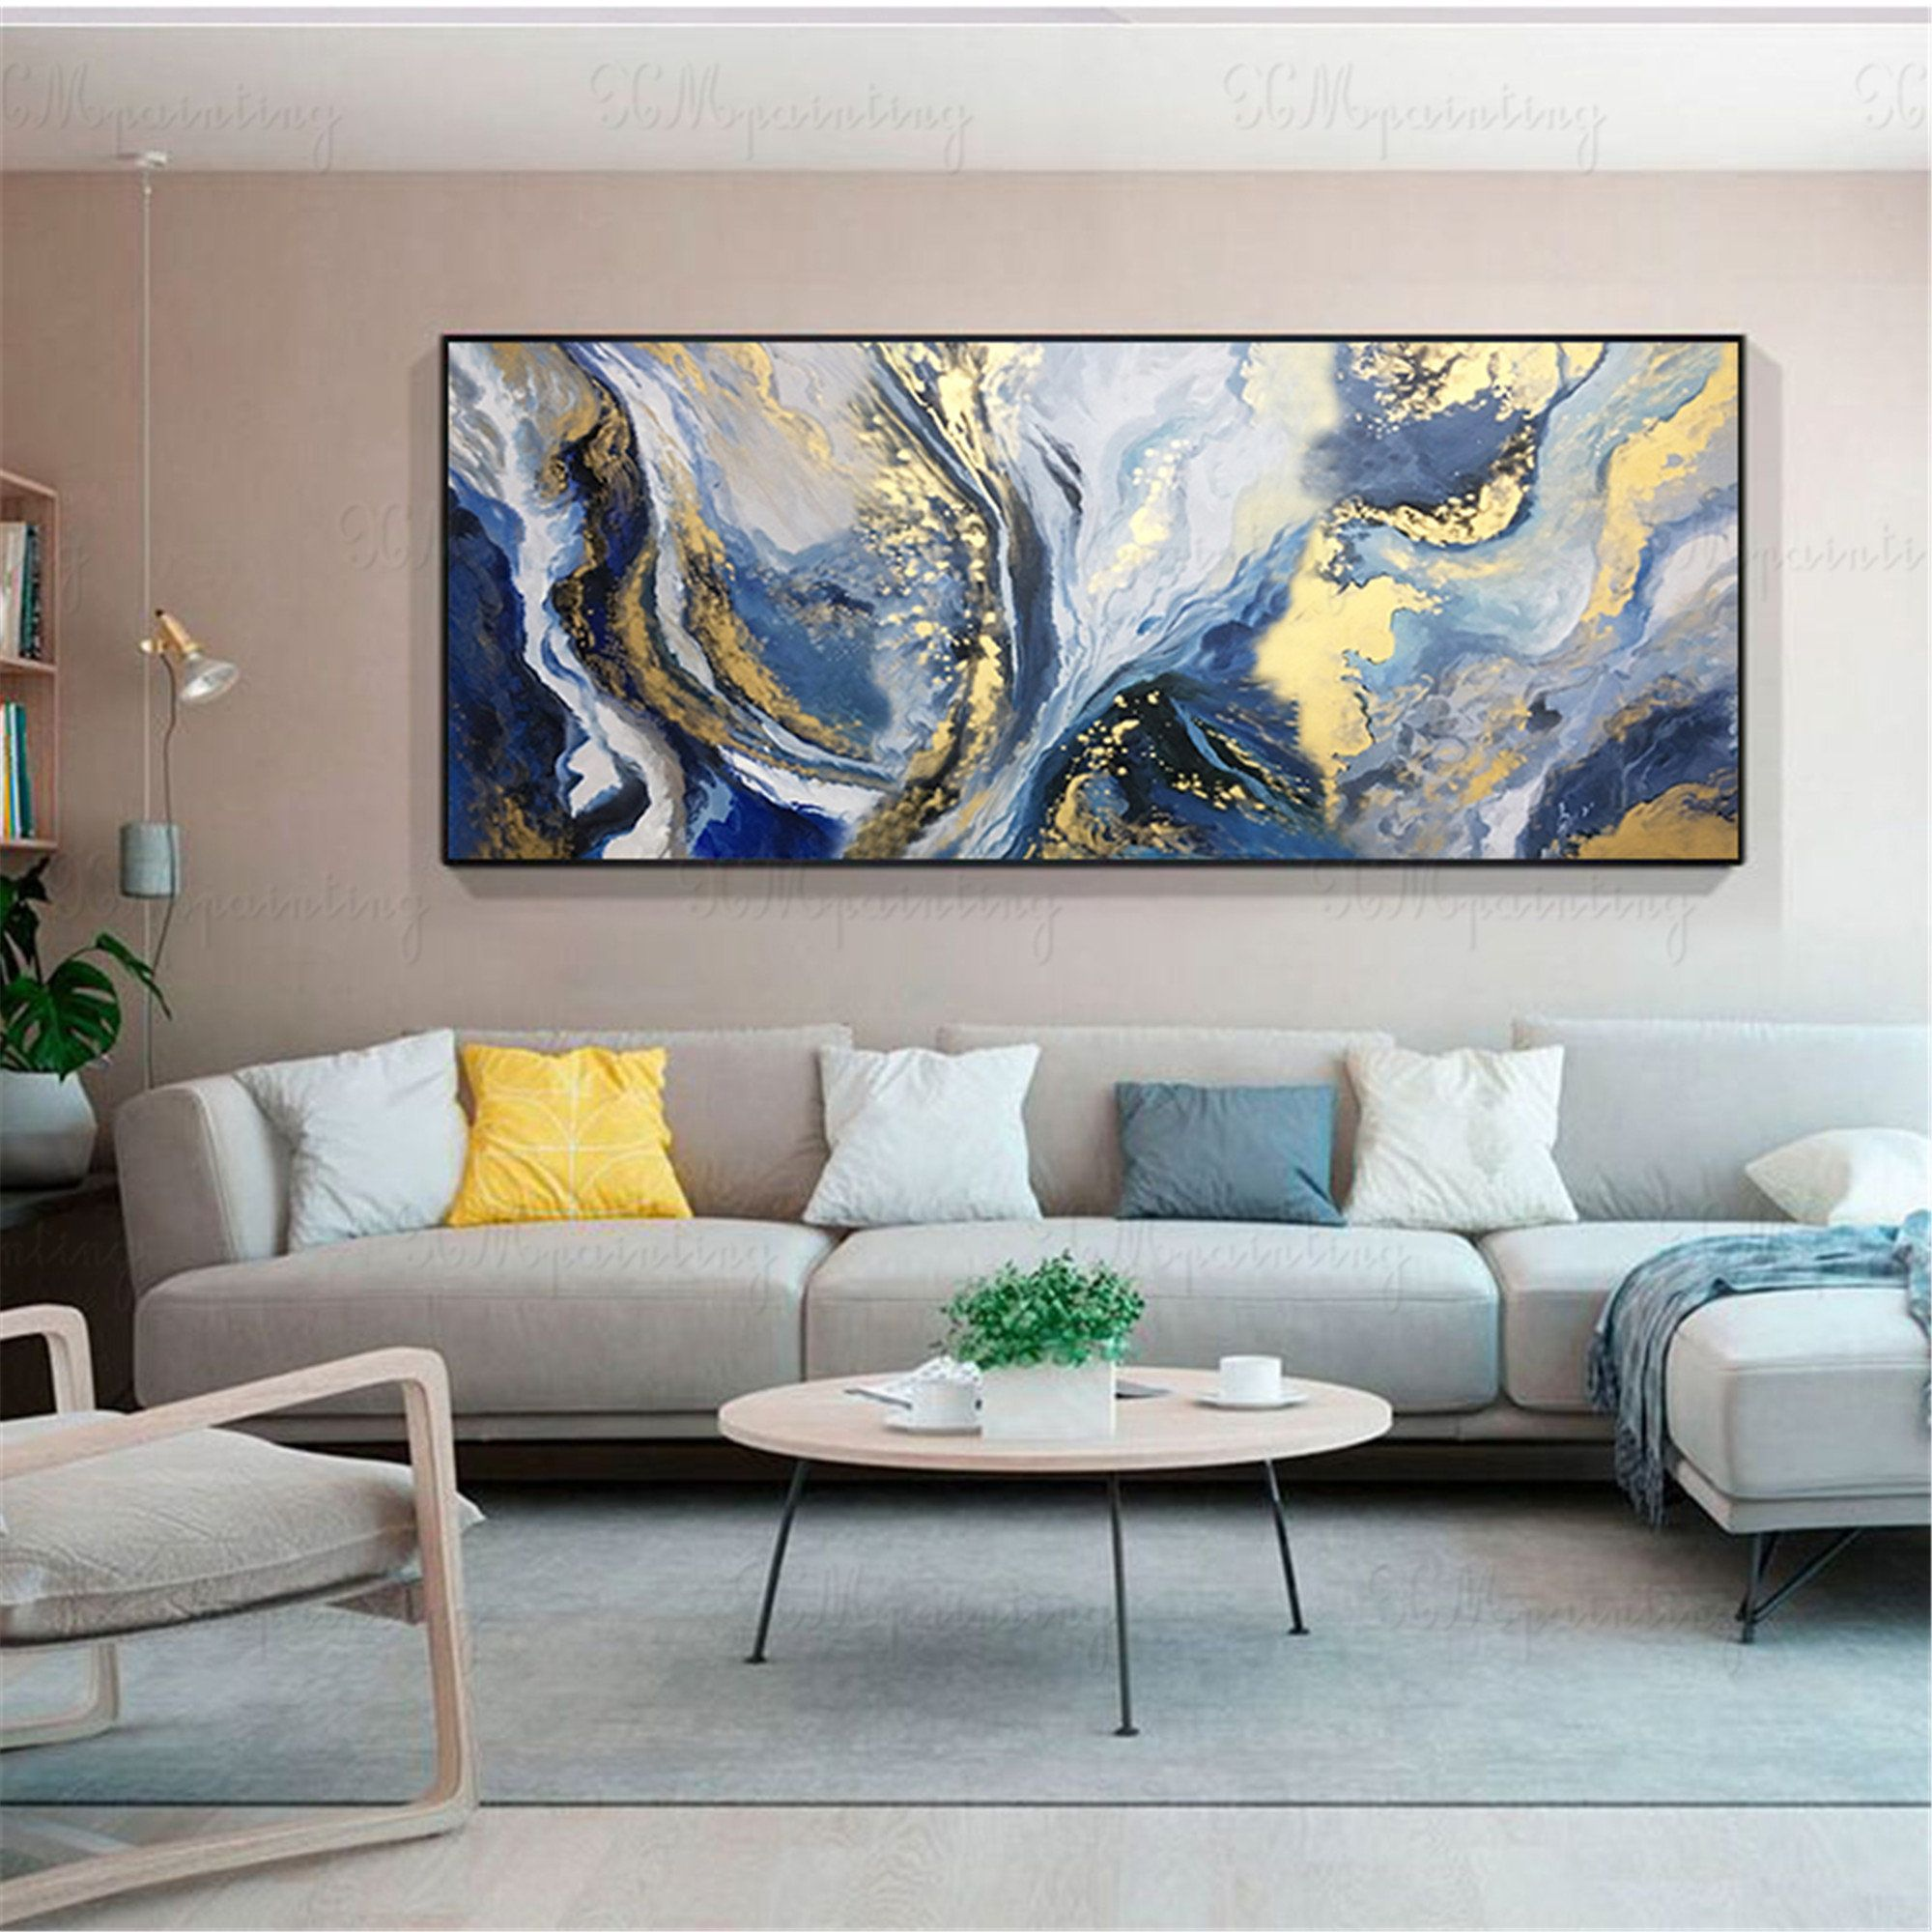 Gold Art Abstract Painting Canvas Wall Art For Living Room Etsy Living Room Art Living Room Pictures Living Room Canvas